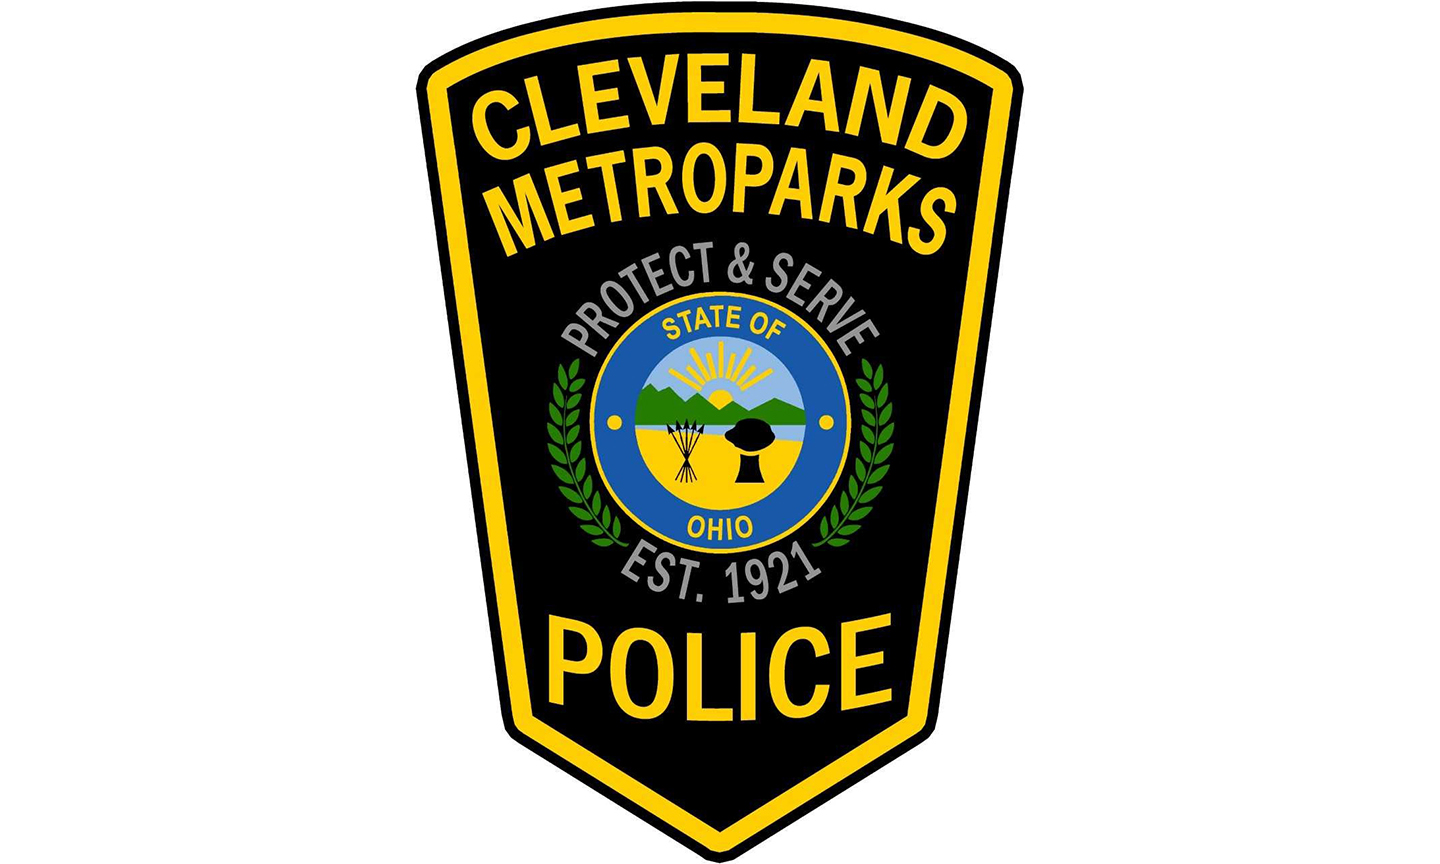 About the Cleveland Metroparks Police Department